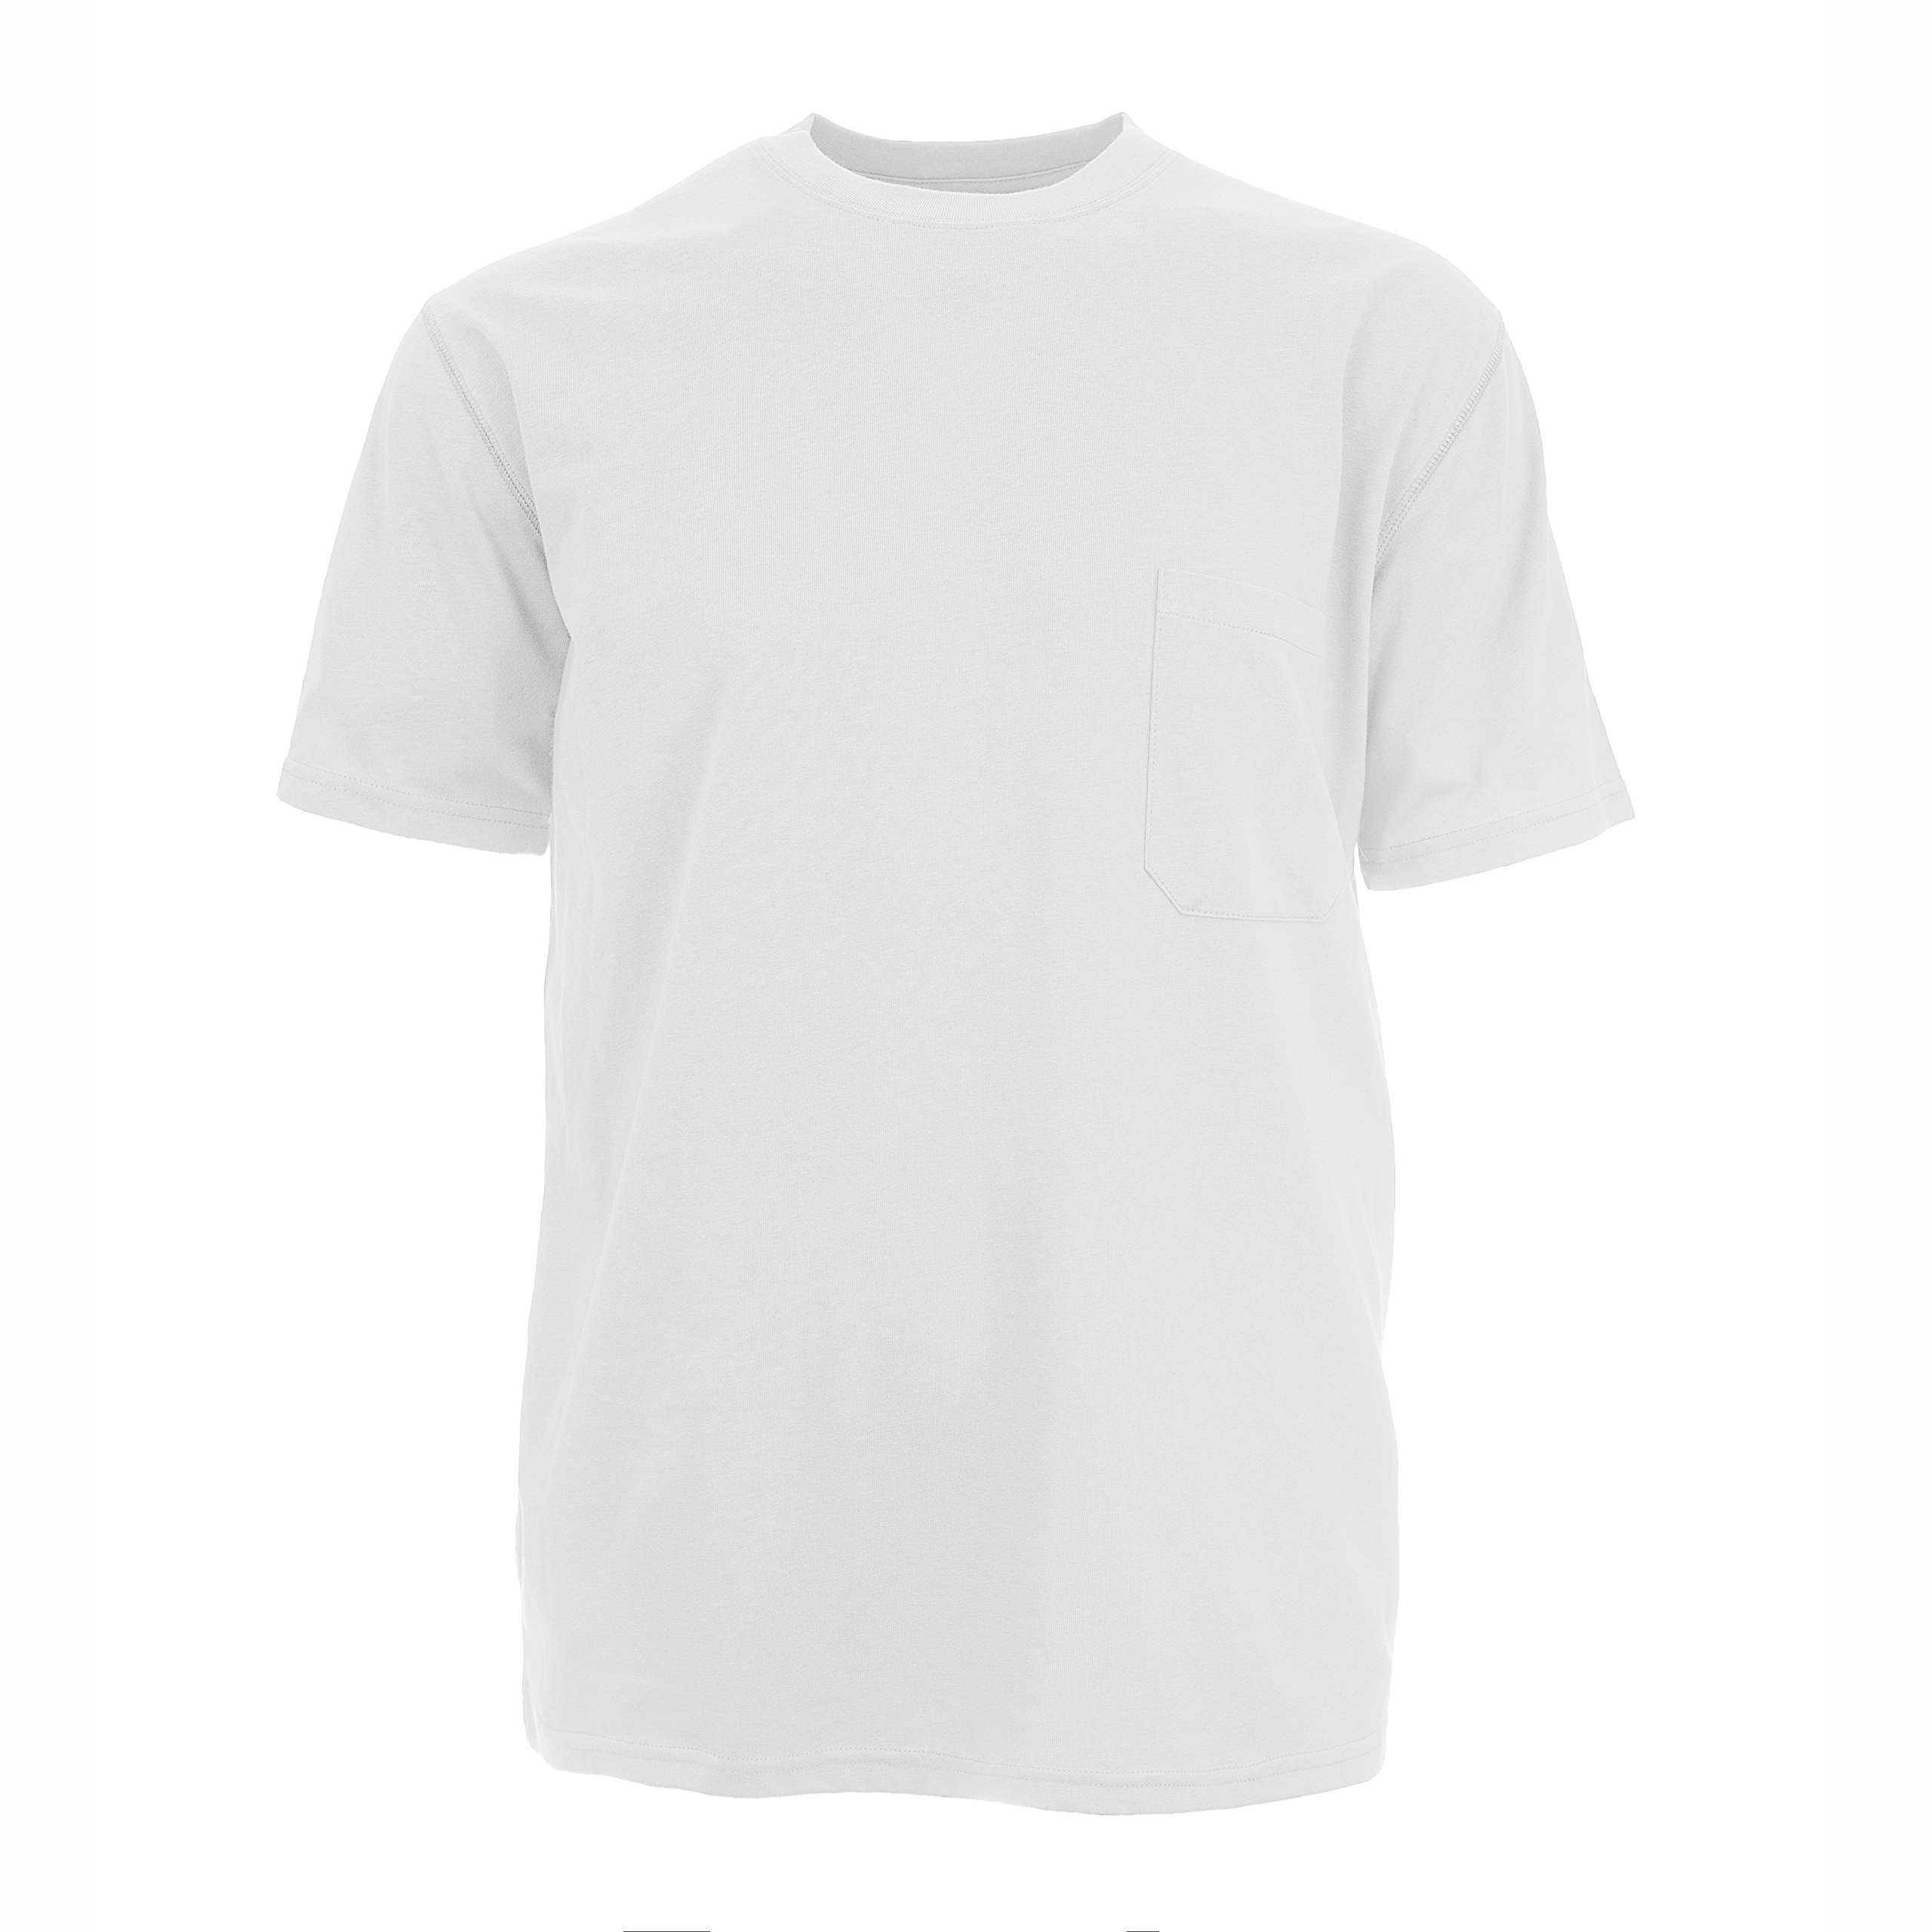 Insect Shield Men's UPF Dri-Balance Short Sleeve Pocket Tee, White, X-Large by Insect Shield